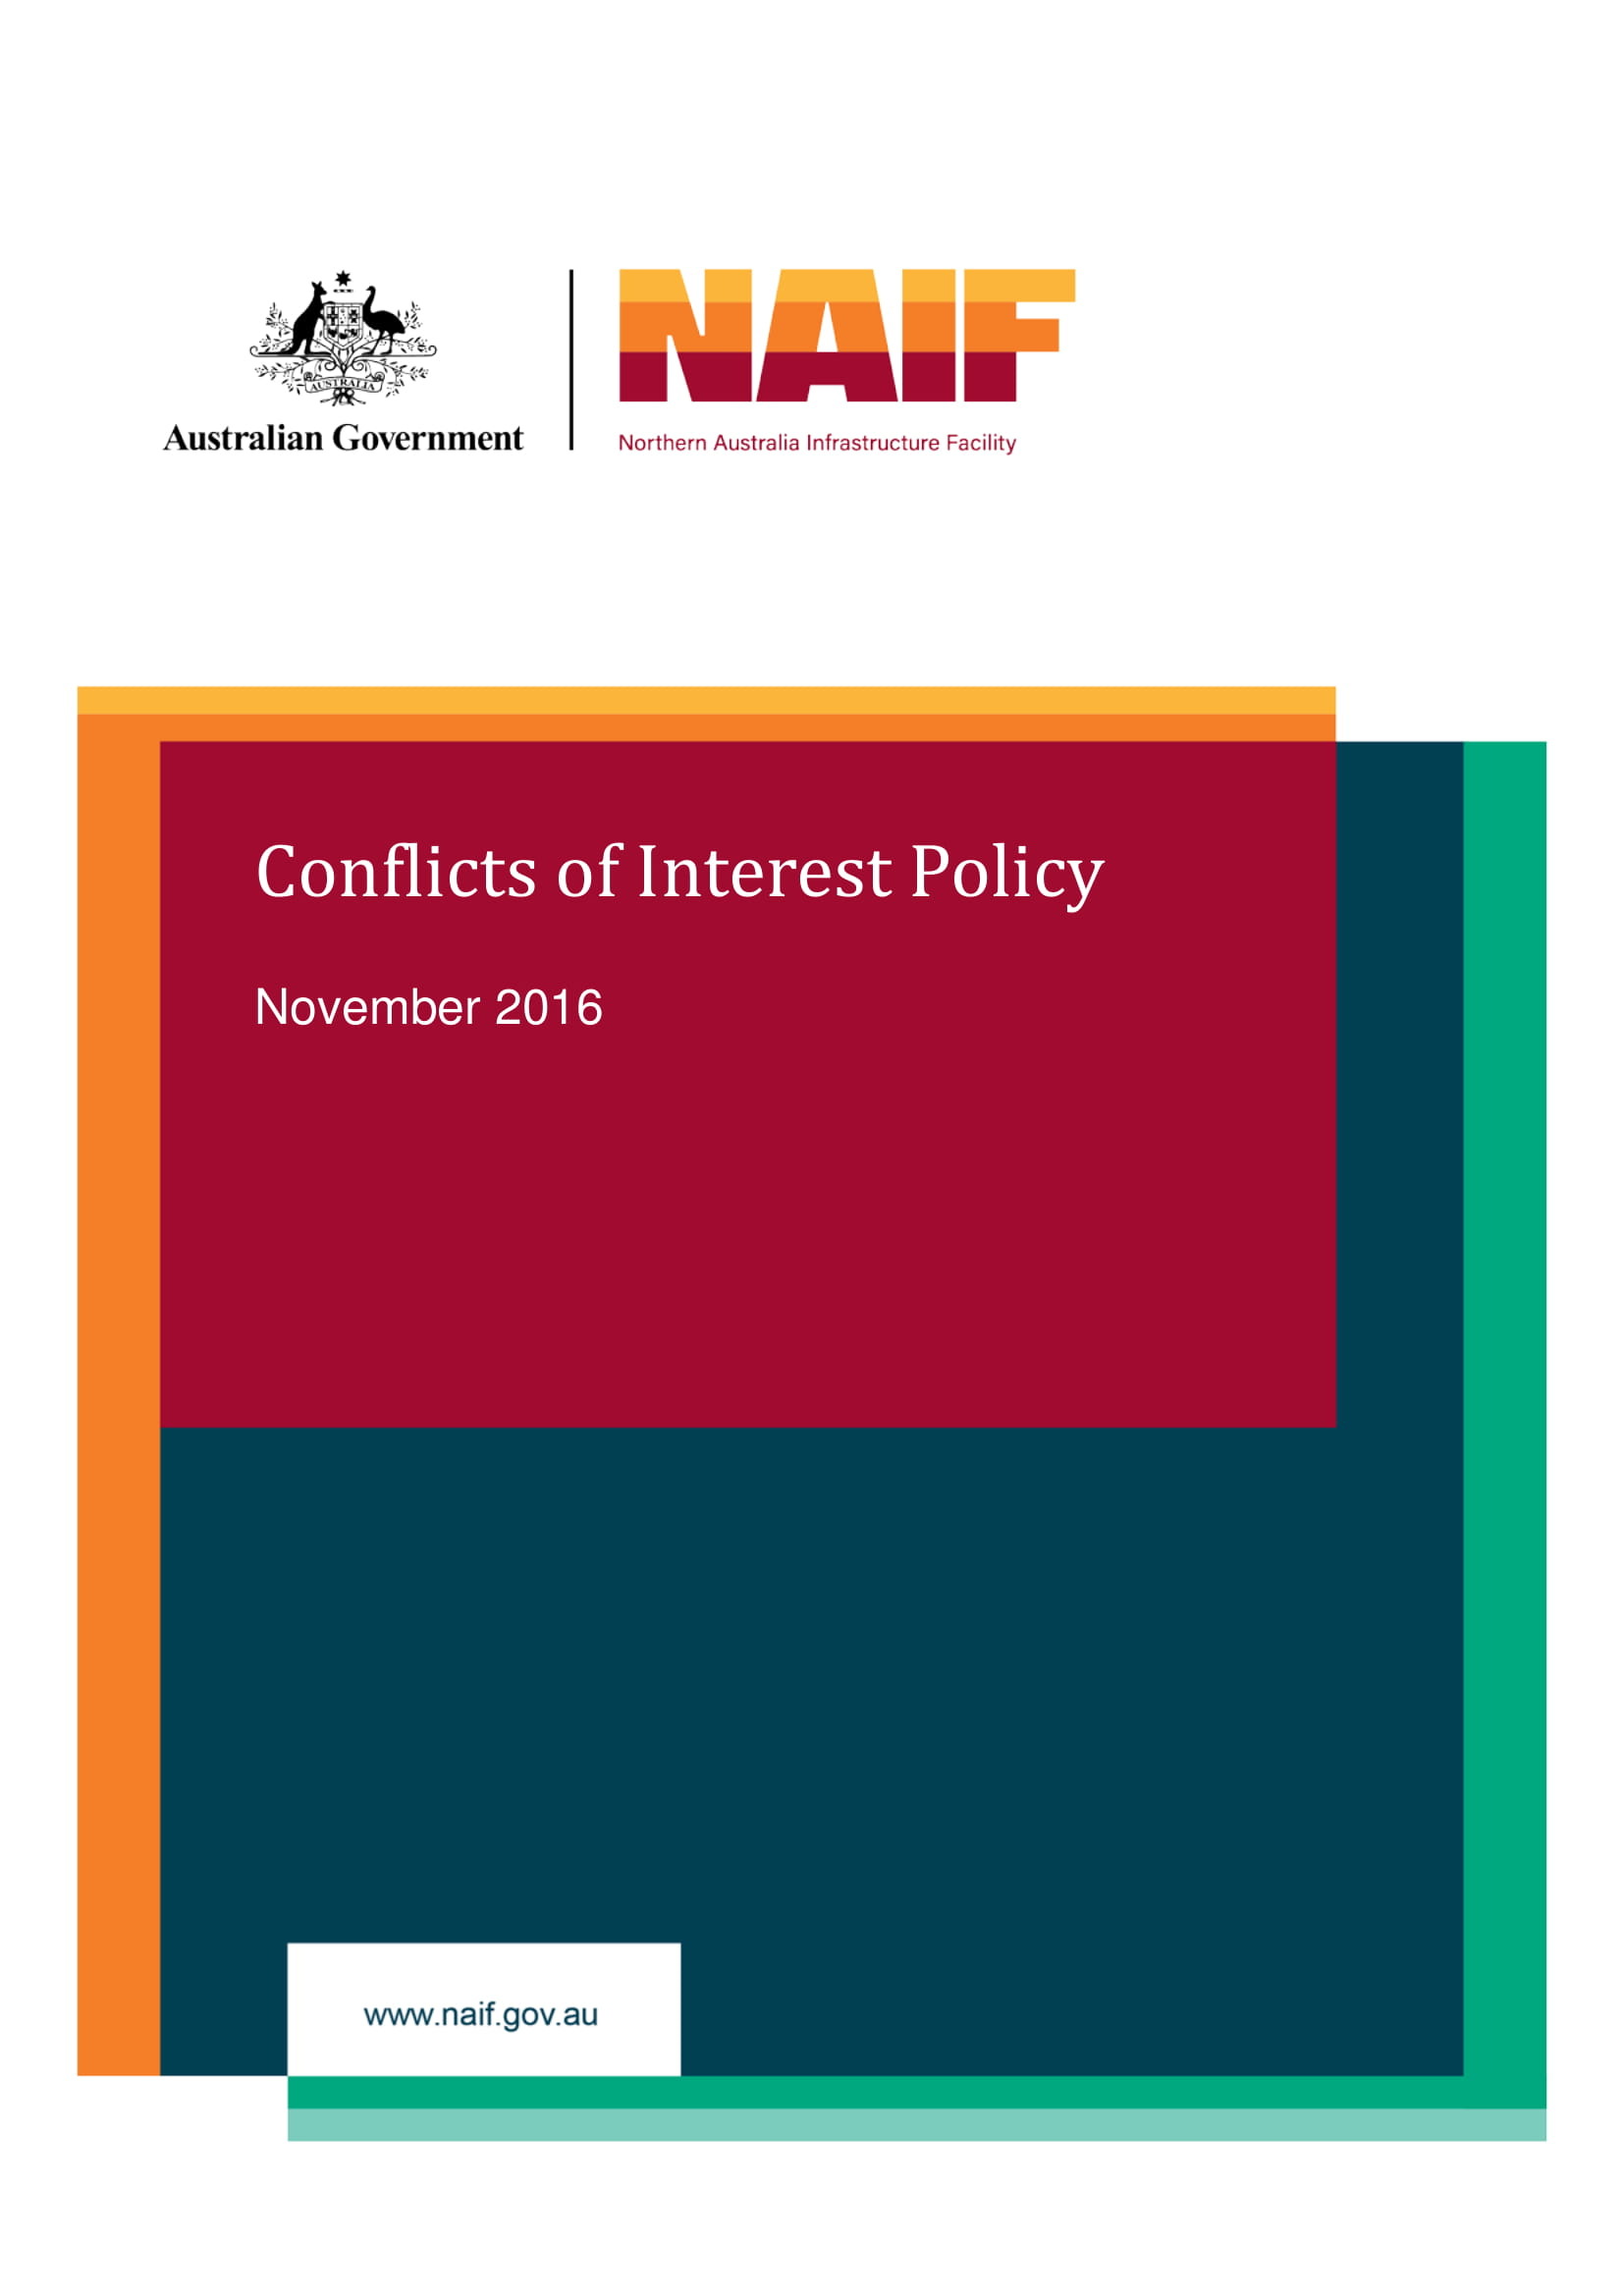 naif conflicts of interest policy 1